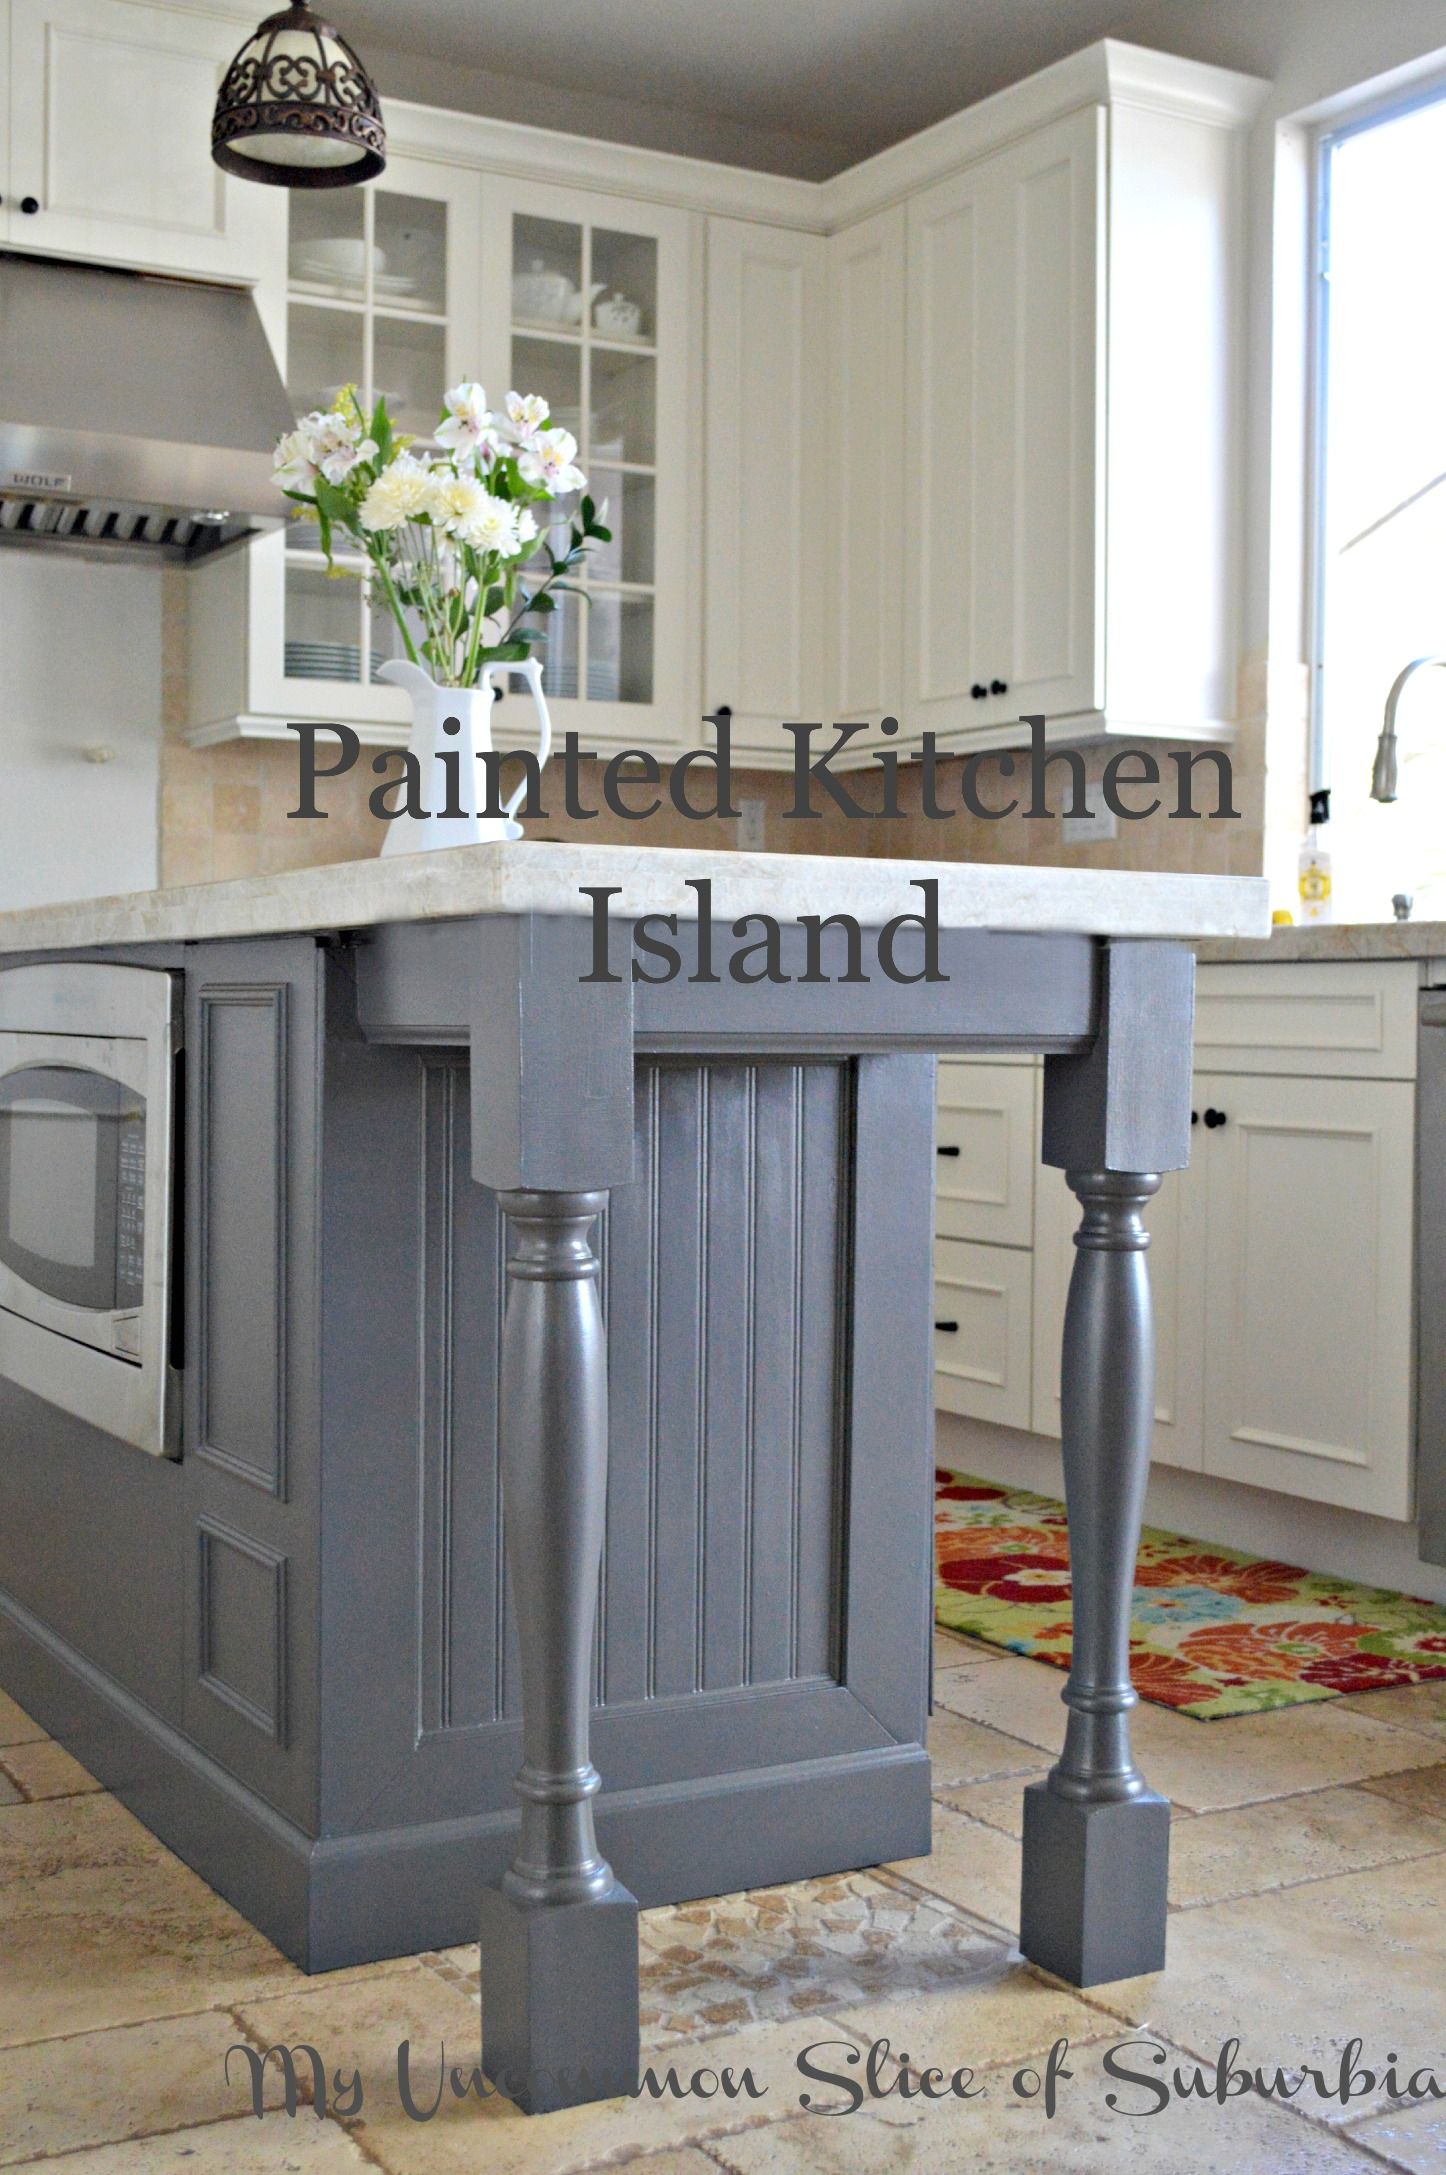 painted kitchen islands utility knife island